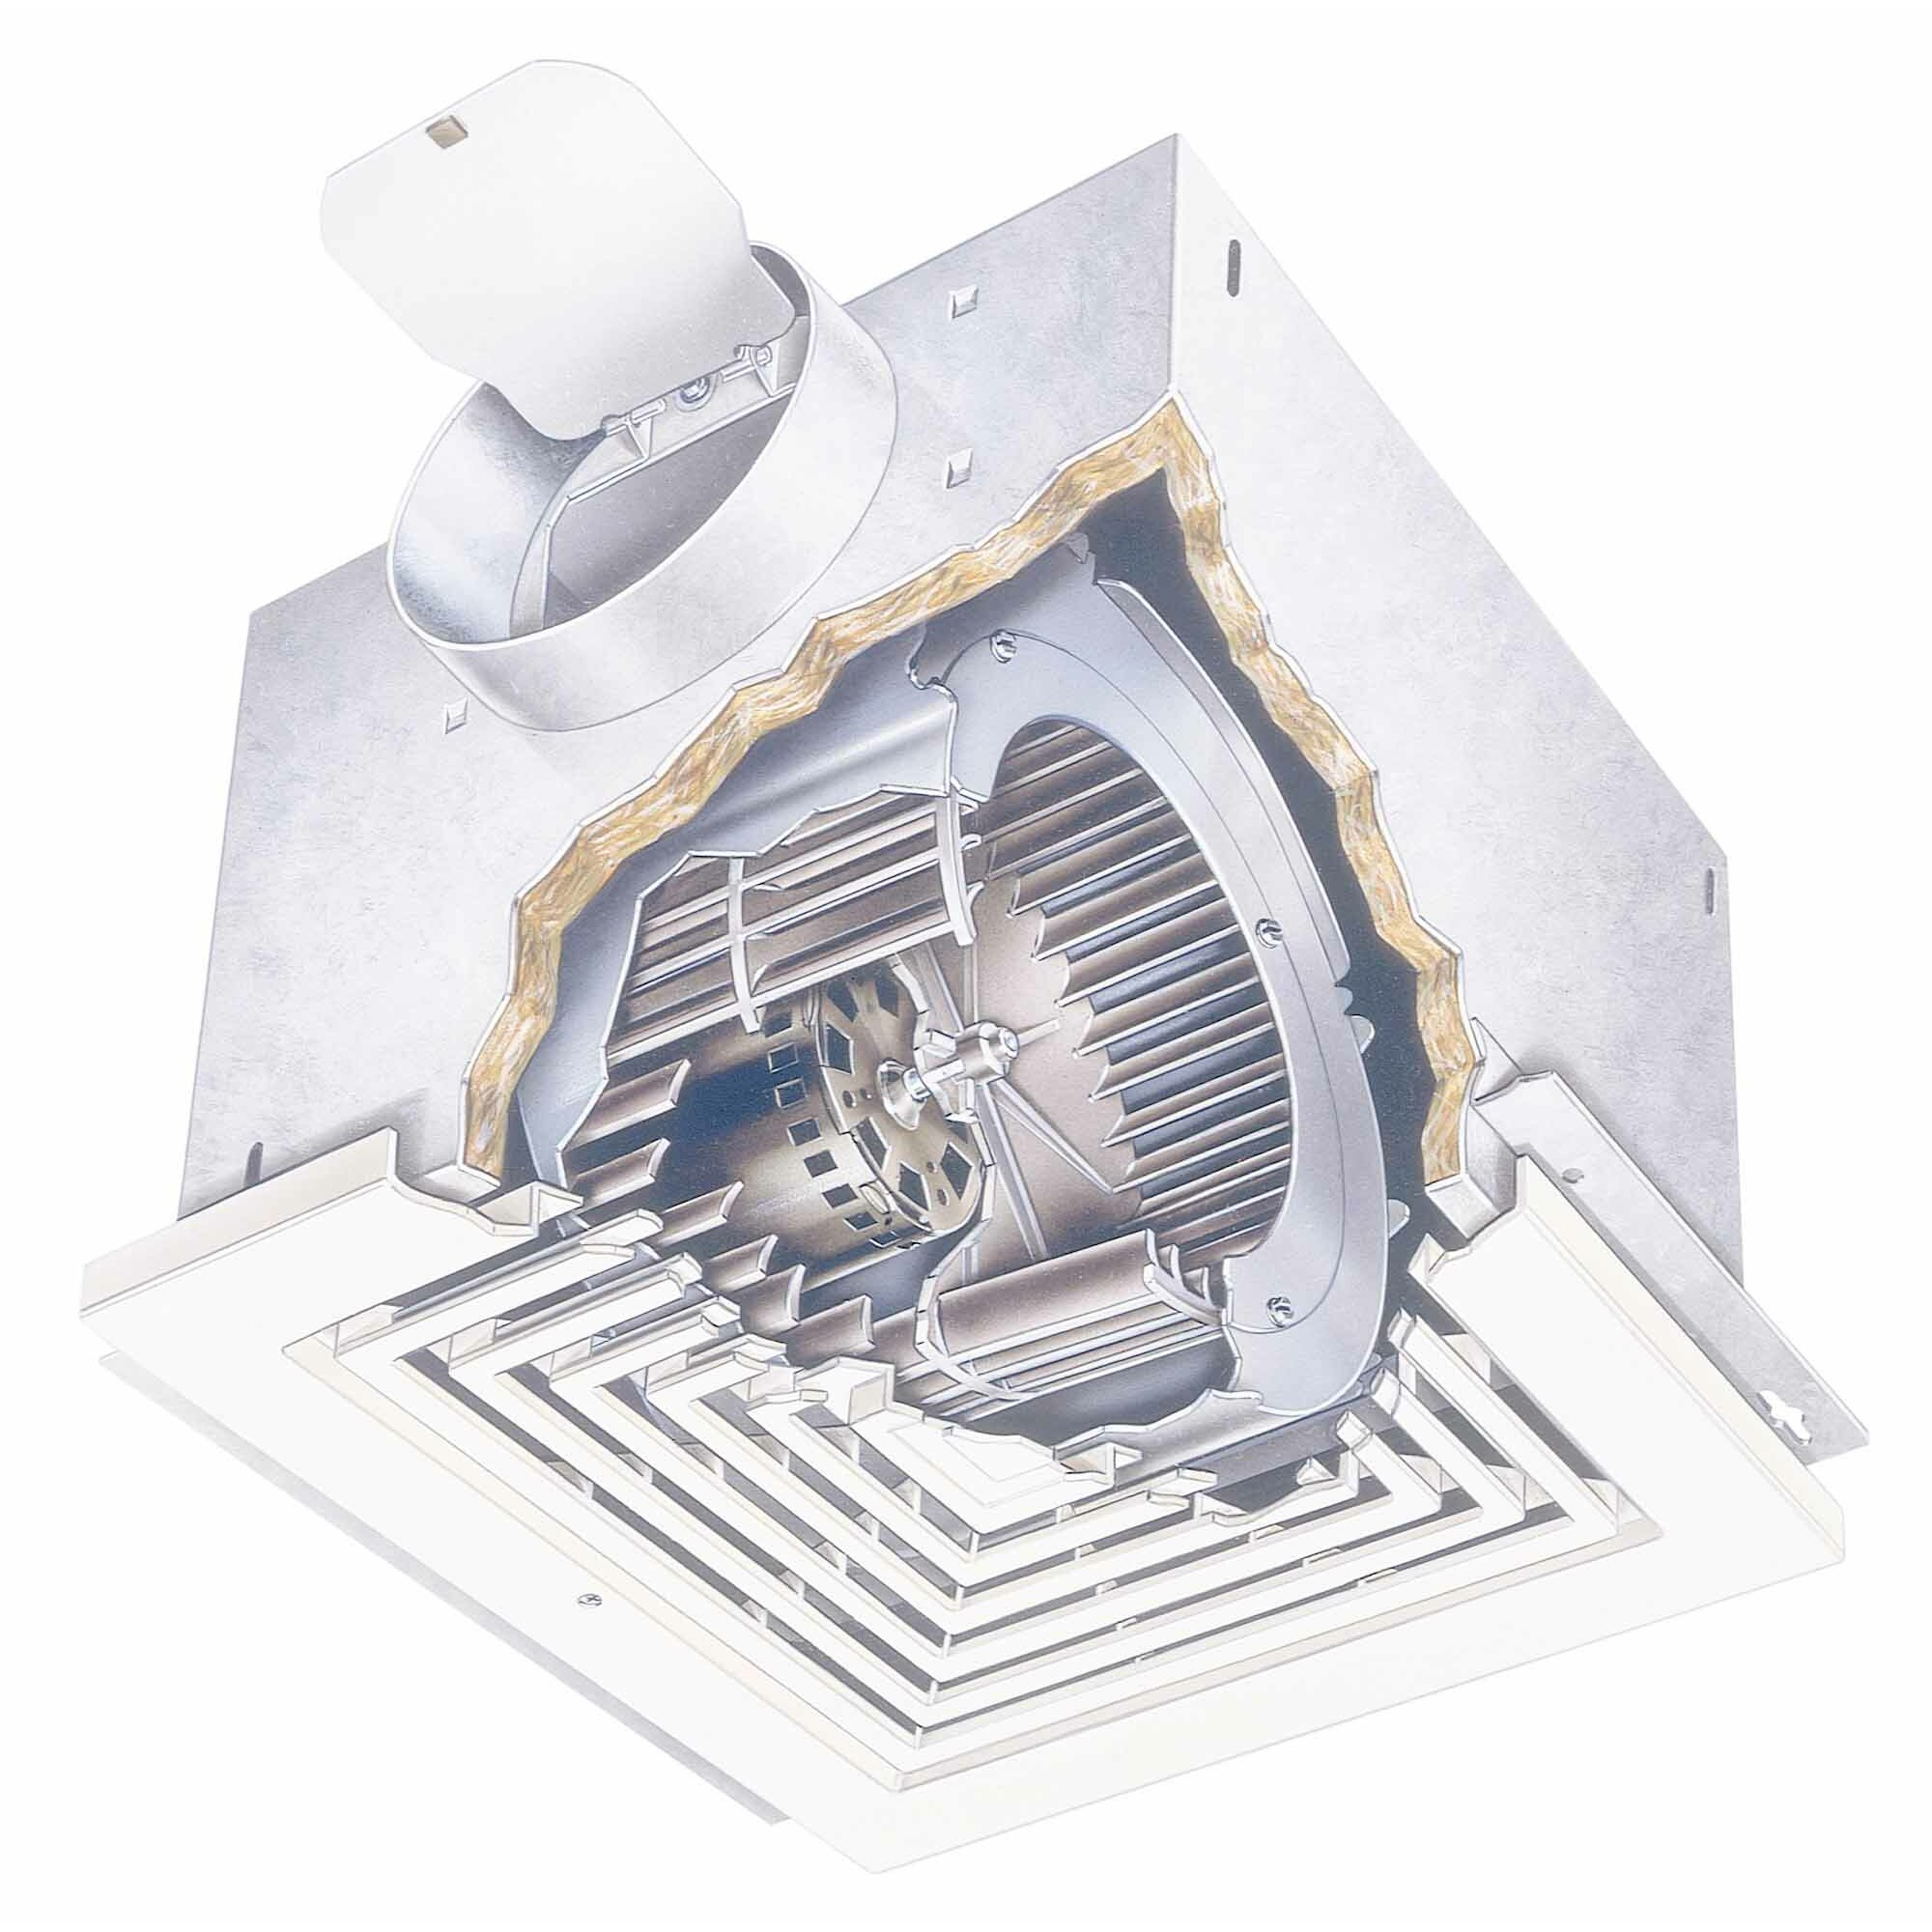 8 Bathroom Exhaust Fan